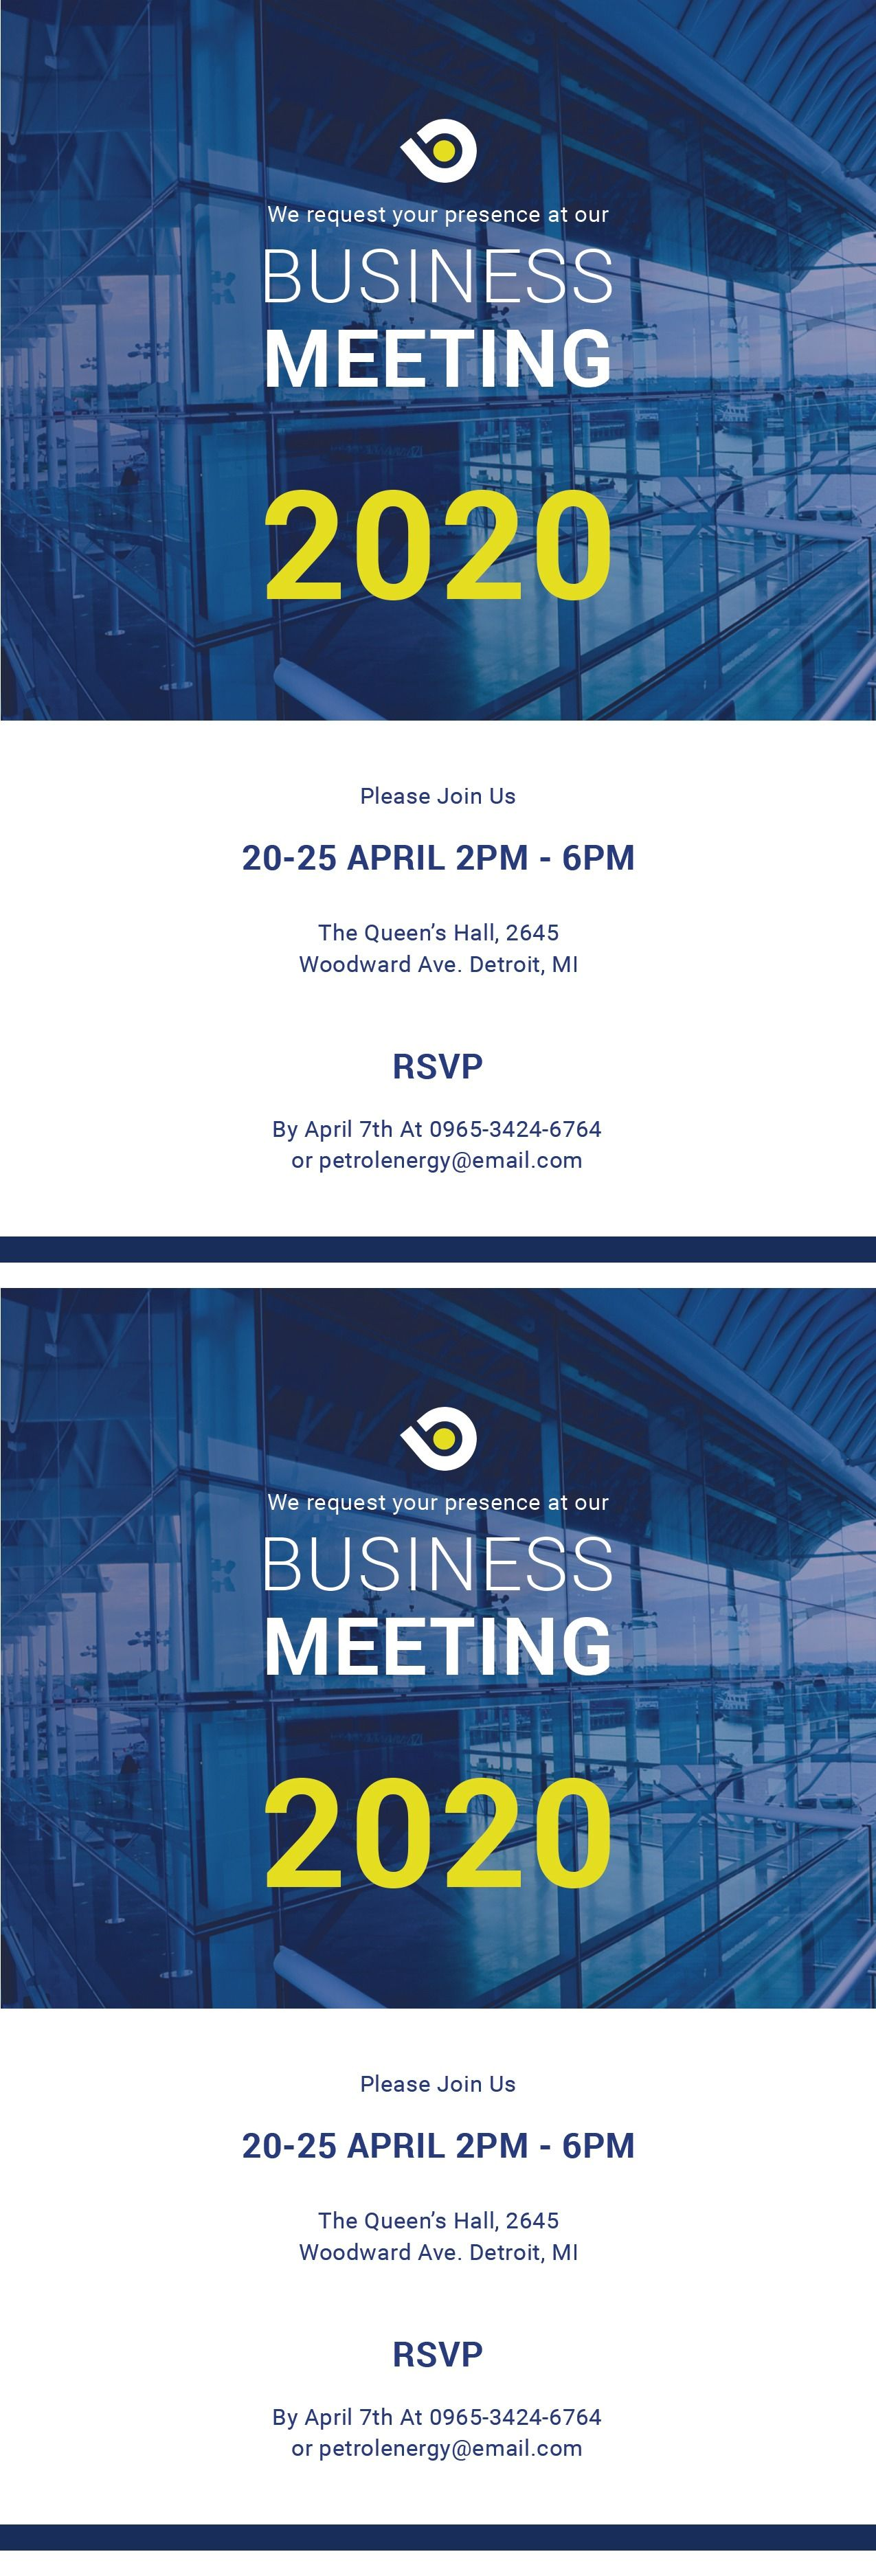 Free business meeting invitation invitation templates invitation free business meeting invitation template flashek Gallery